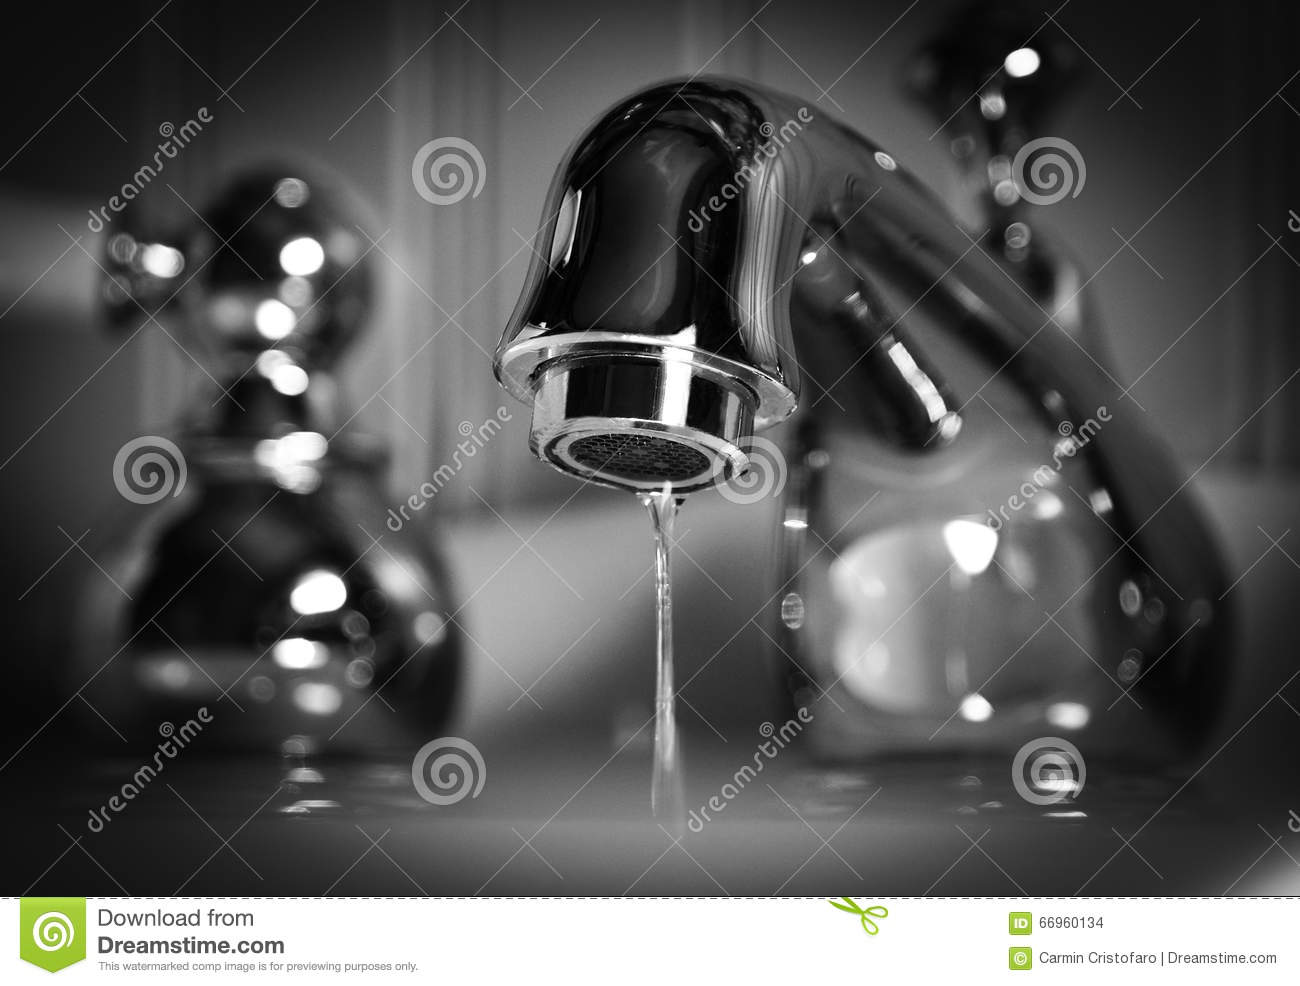 Water Faucet With Dripping Water Stock Photo - Image of leak ...